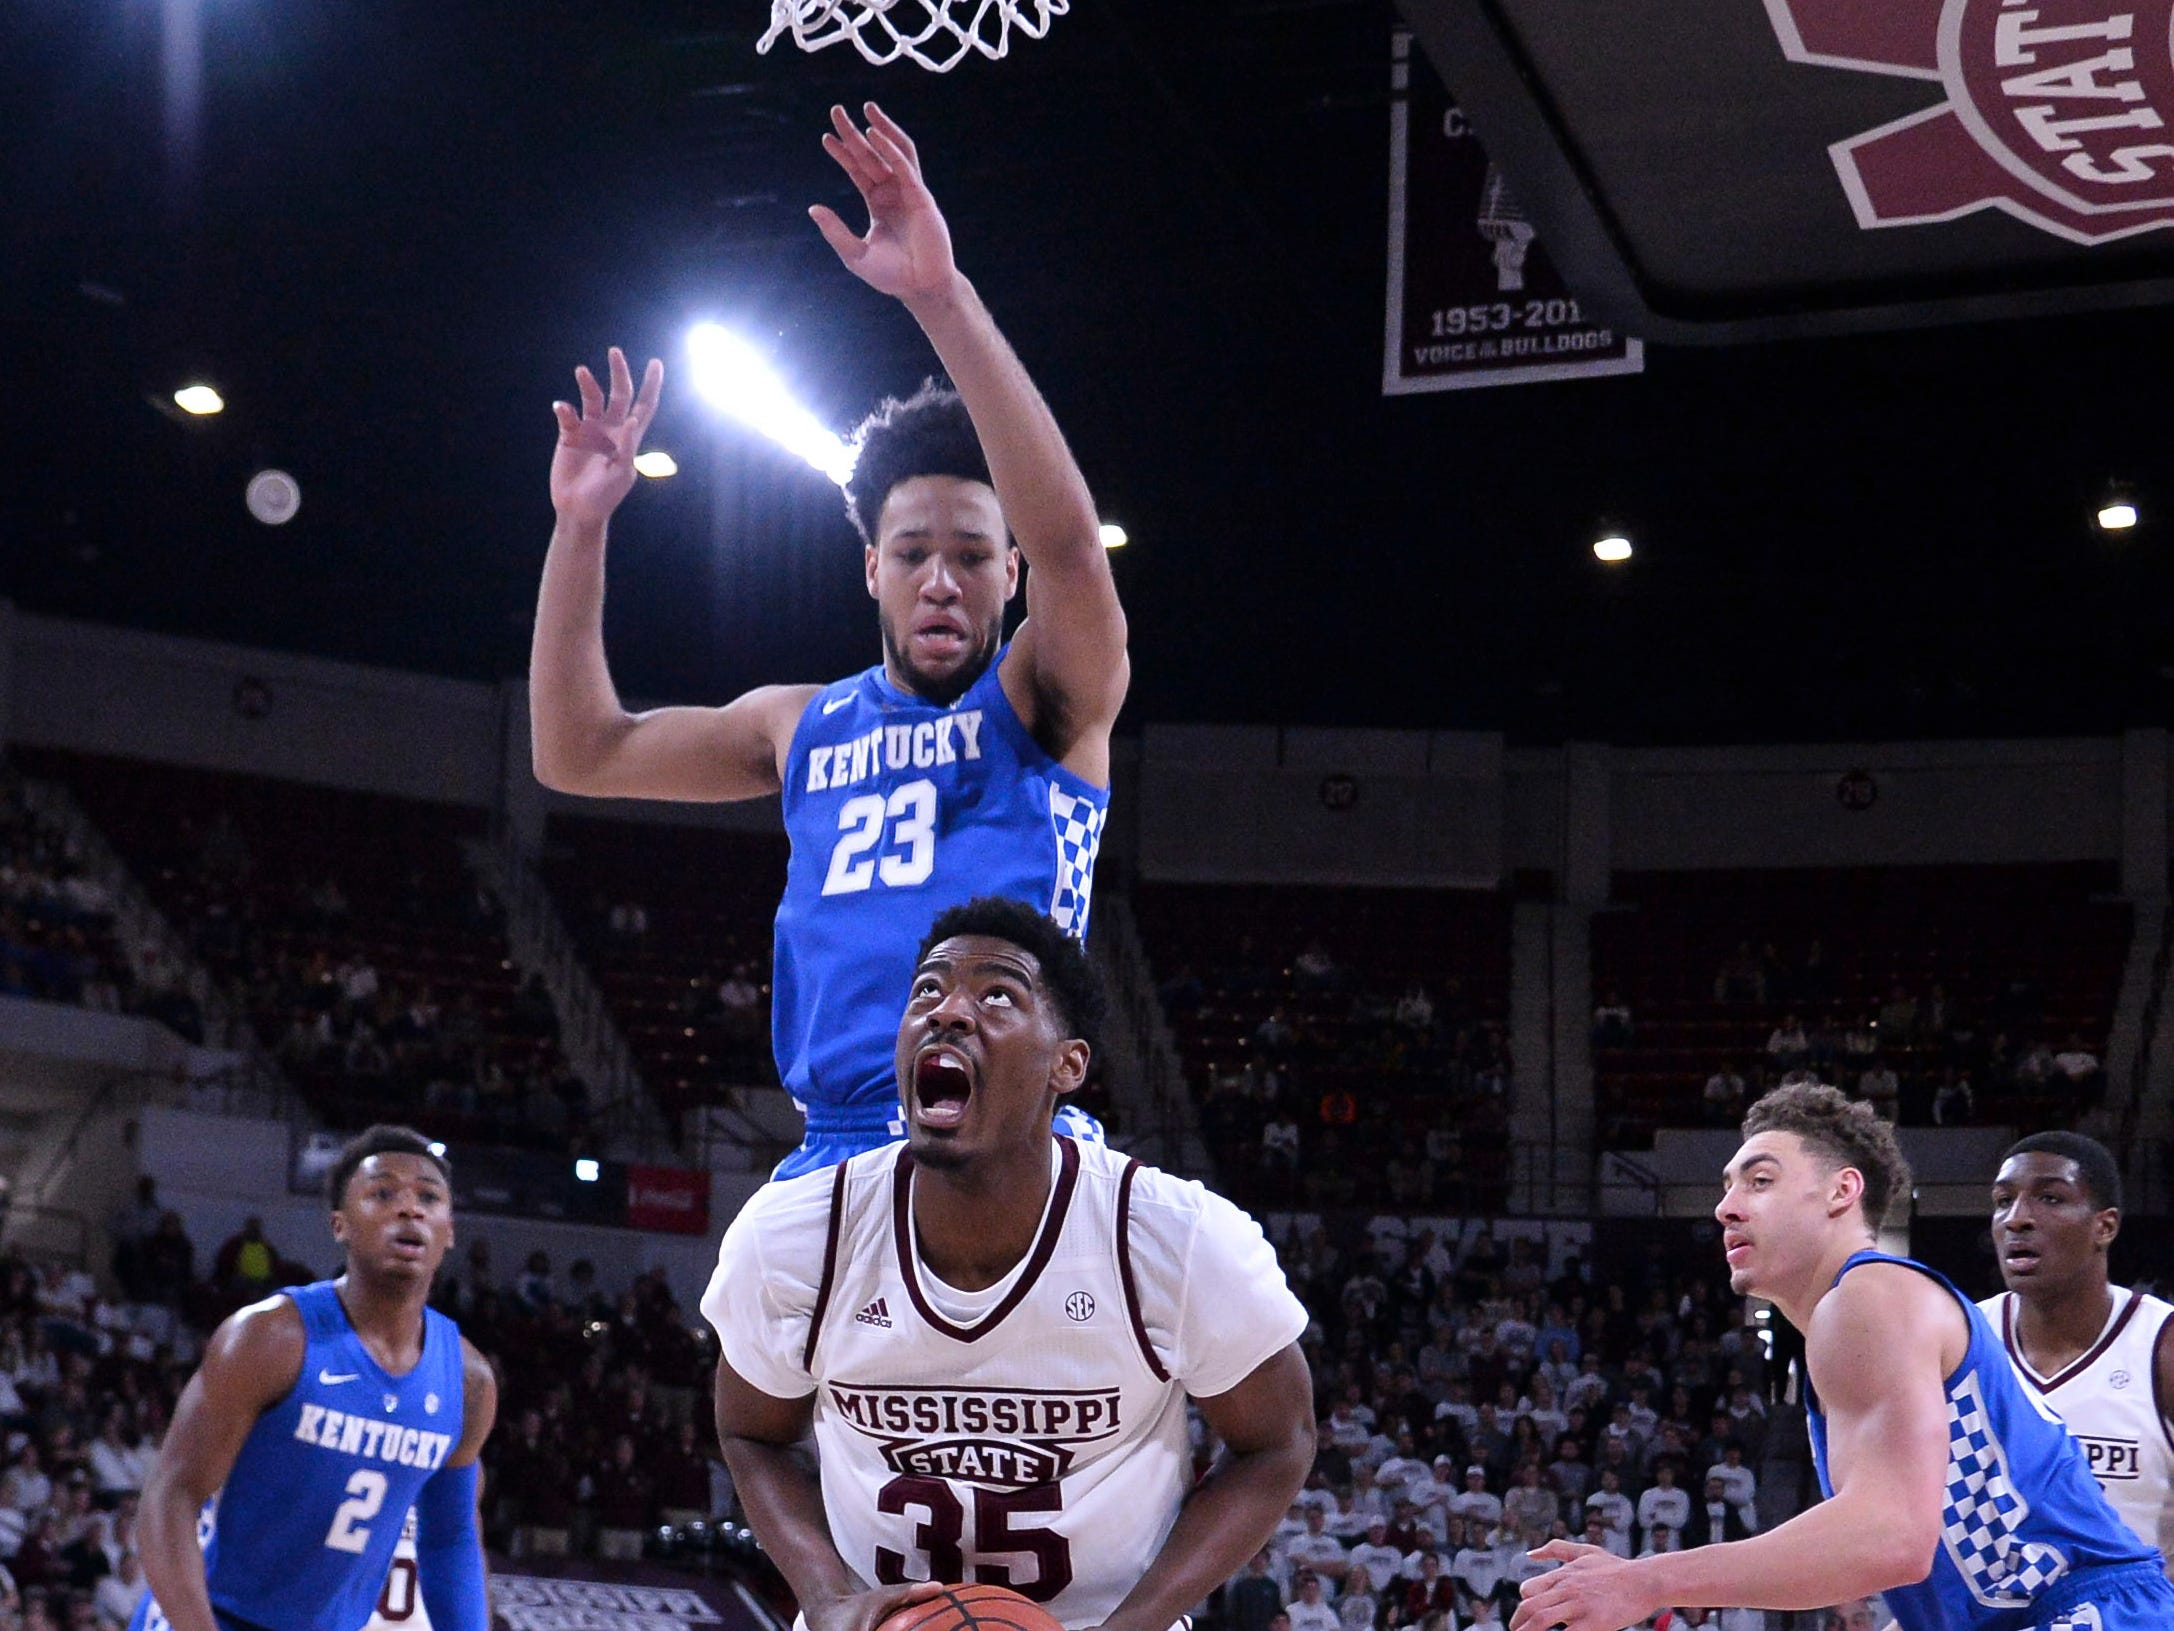 Mississippi State Bulldogs forward Aric Holman (35) handles the ball while being defended by Kentucky Wildcats forward EJ Montgomery (23) during the first half at Humphrey Coliseum in Starkville, Mississippi, on Saturday, Feb. 9, 2019.